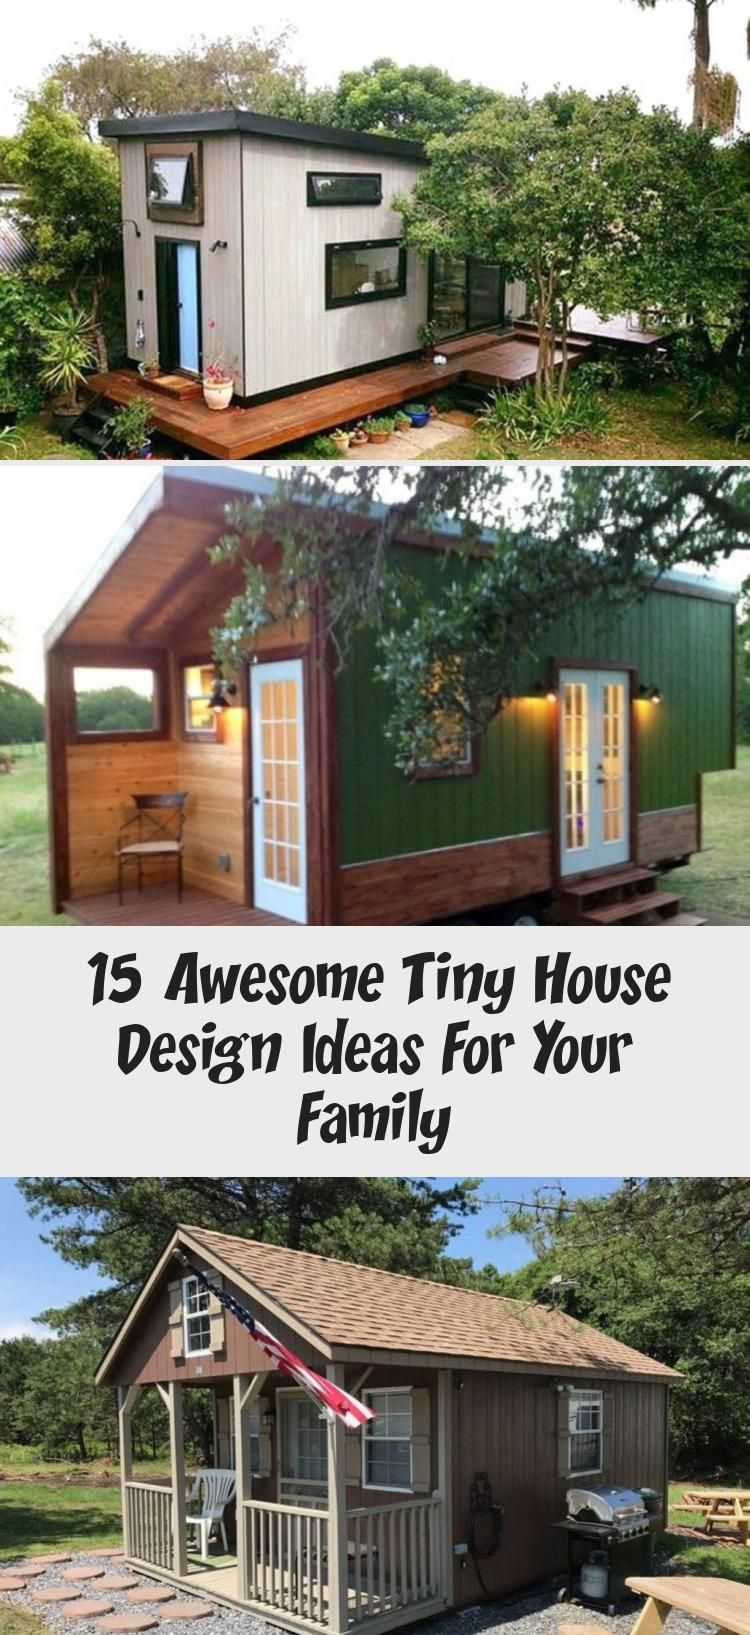 Tinyhouseplansaustralia Tinyhouseplansfree Tinyhouseplans700sqft Tinyhouseplans12x20 Tinyhouseplans2bed In 2020 Tiny House Design House Design Tiny House Rustic